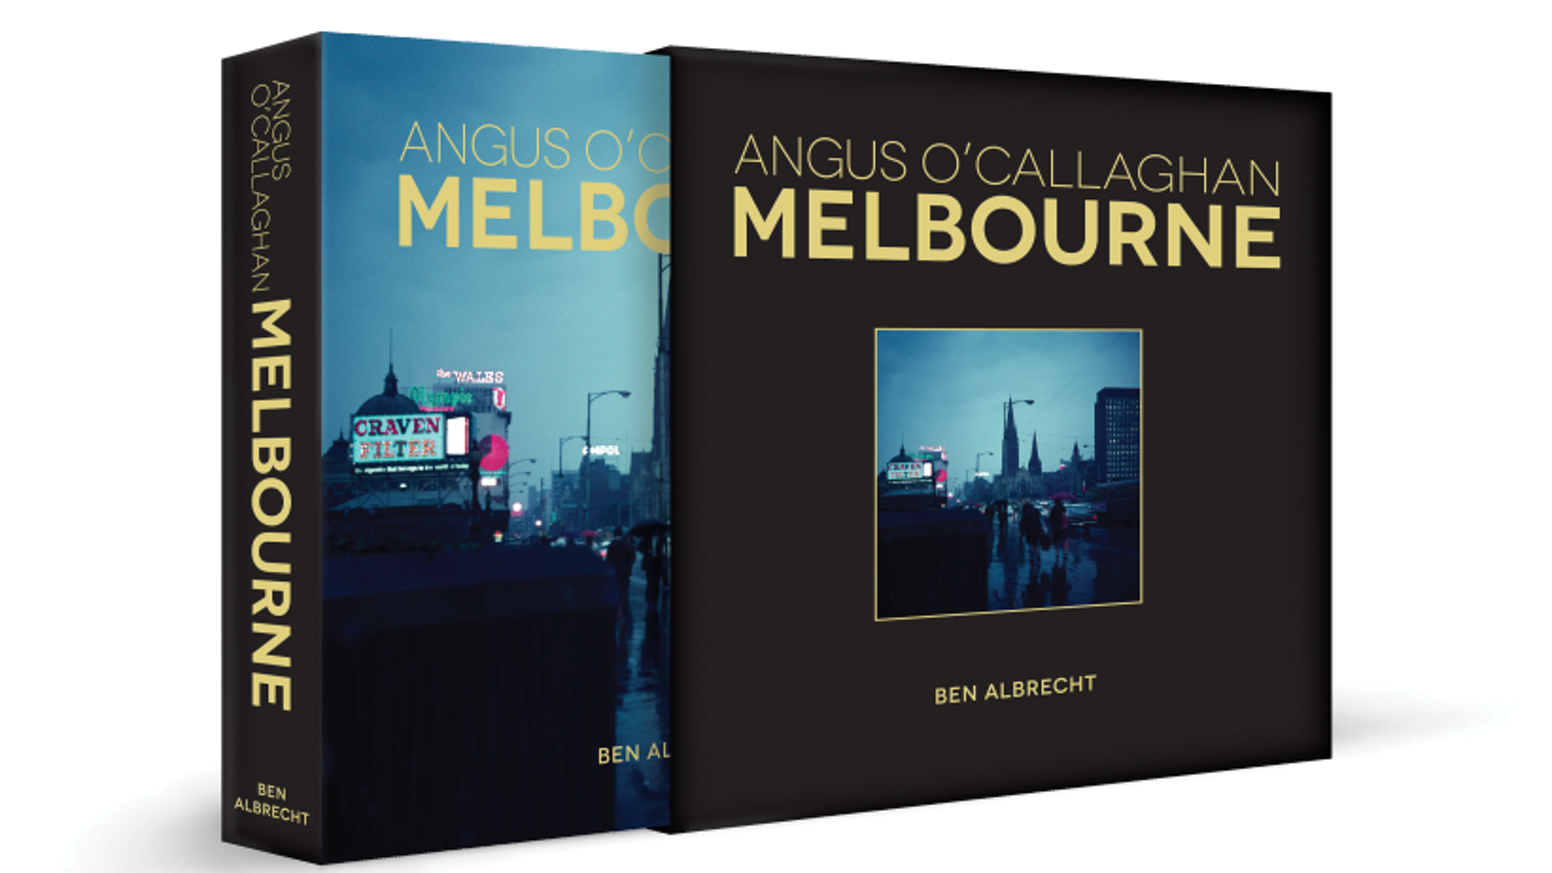 This coffee table book features Melbourne as never seen before through the eyes of an artist now 93 years old. Melbourne from 1968-1971